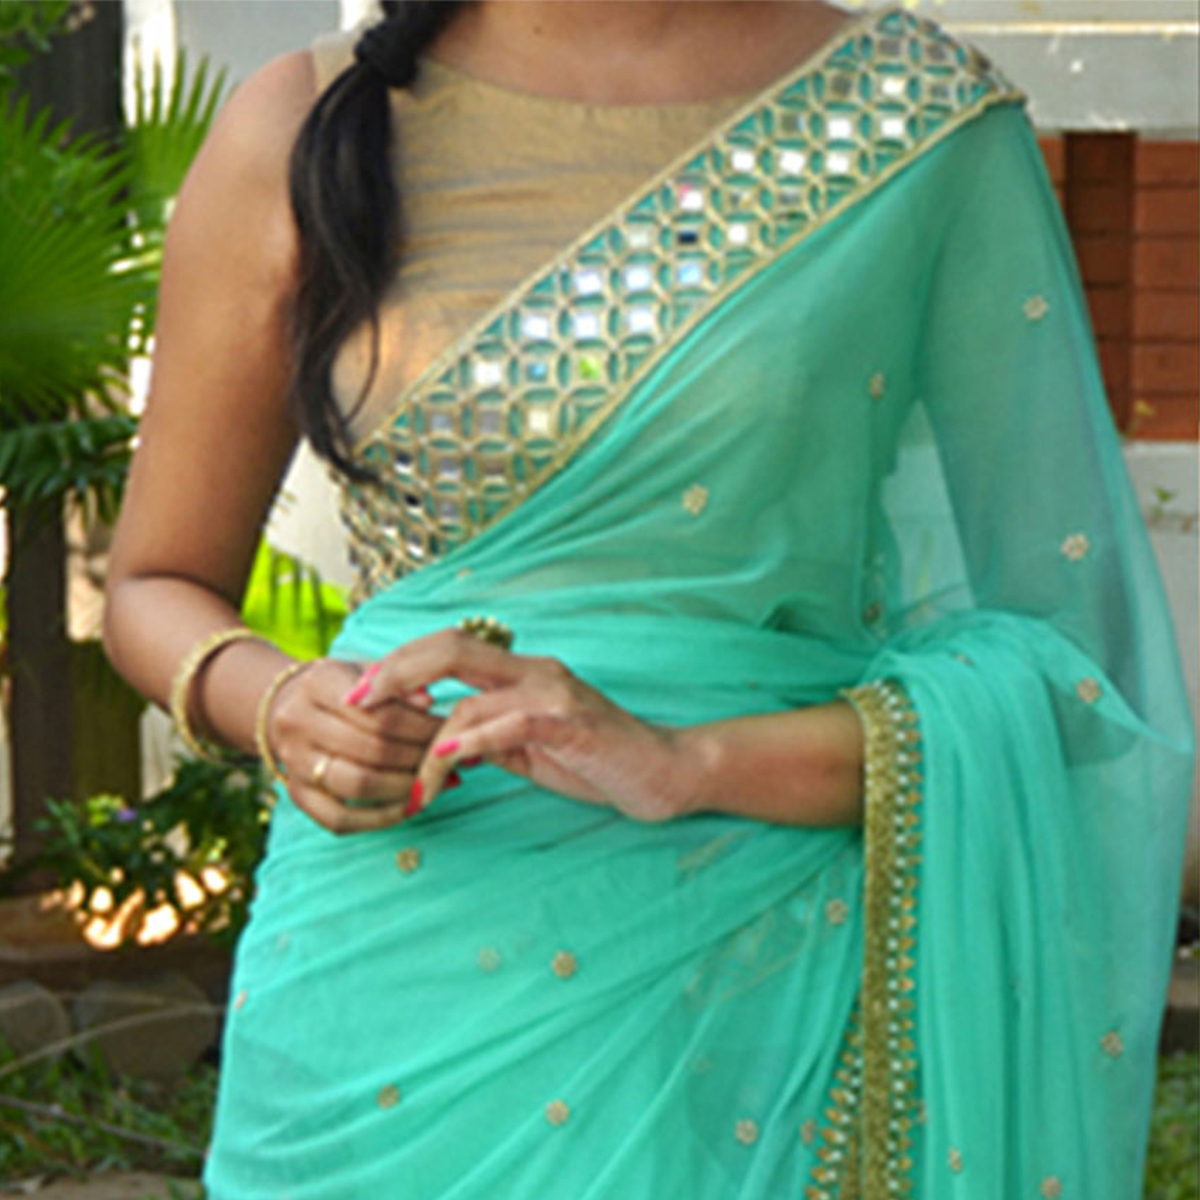 Sea Green Saree with Pearl Motifs